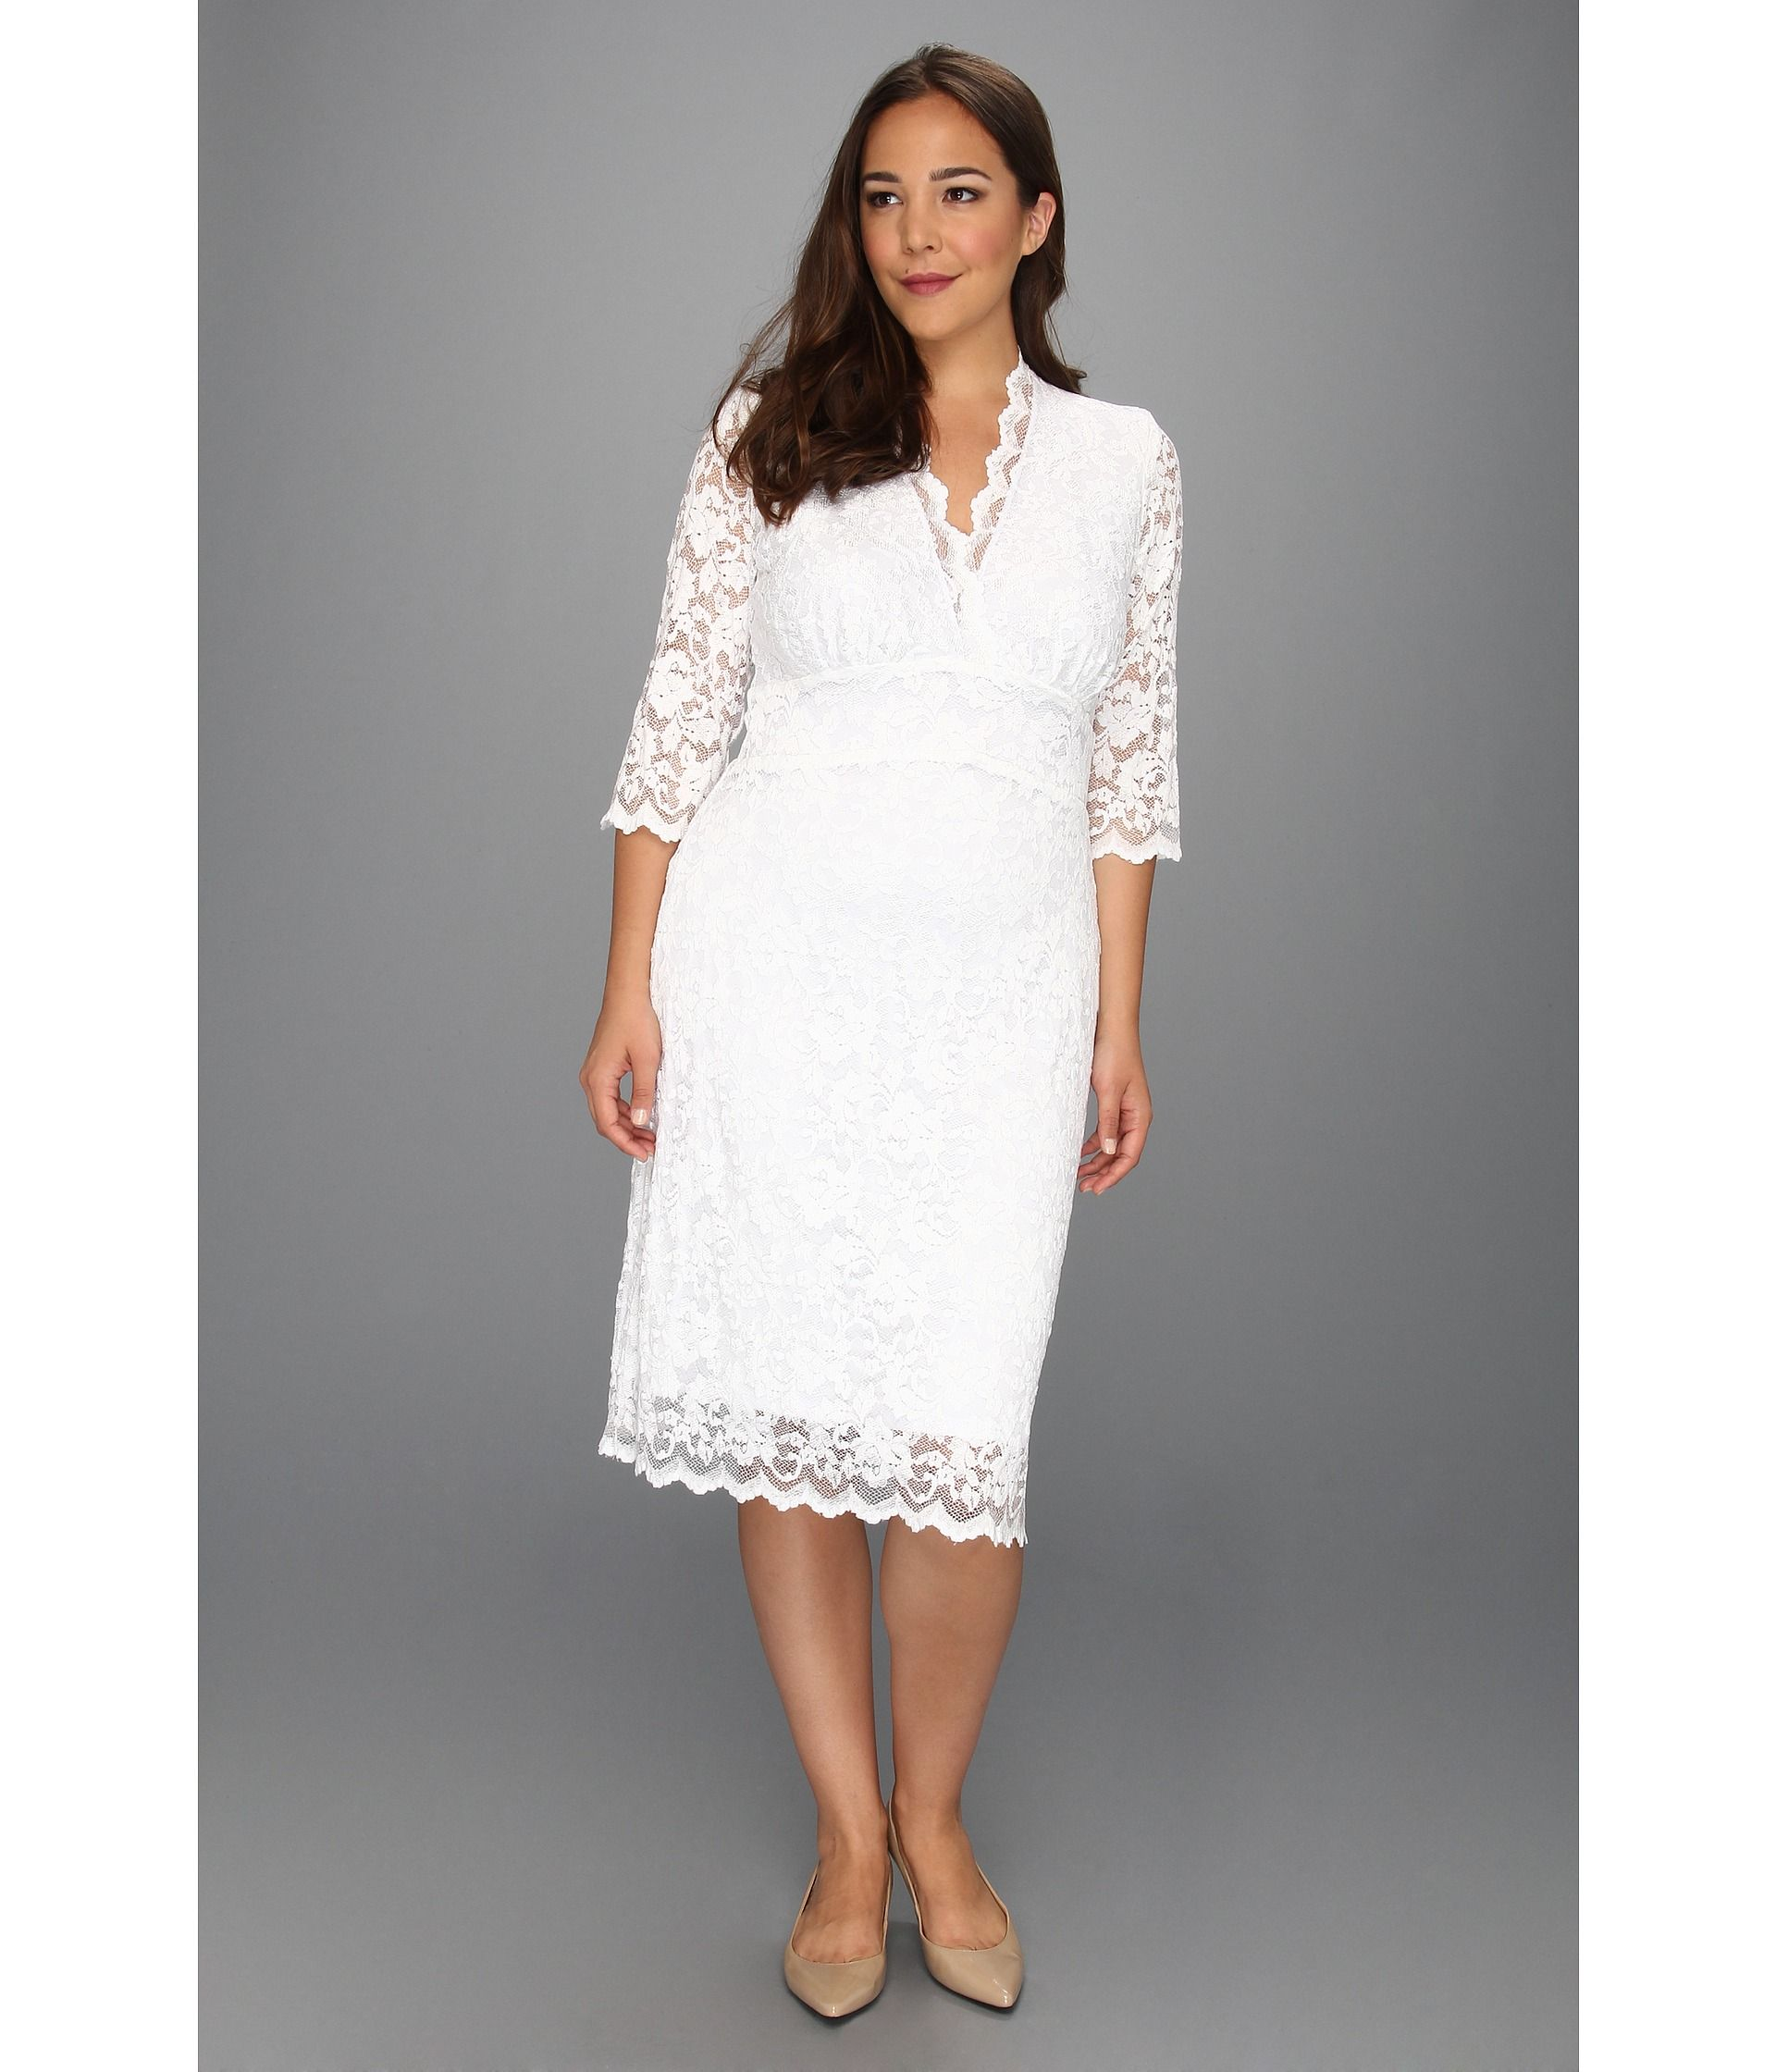 Kiyonna wedding dress  Kiyonna Luxe Lace Wedding Dress White  Zappos Free Shipping